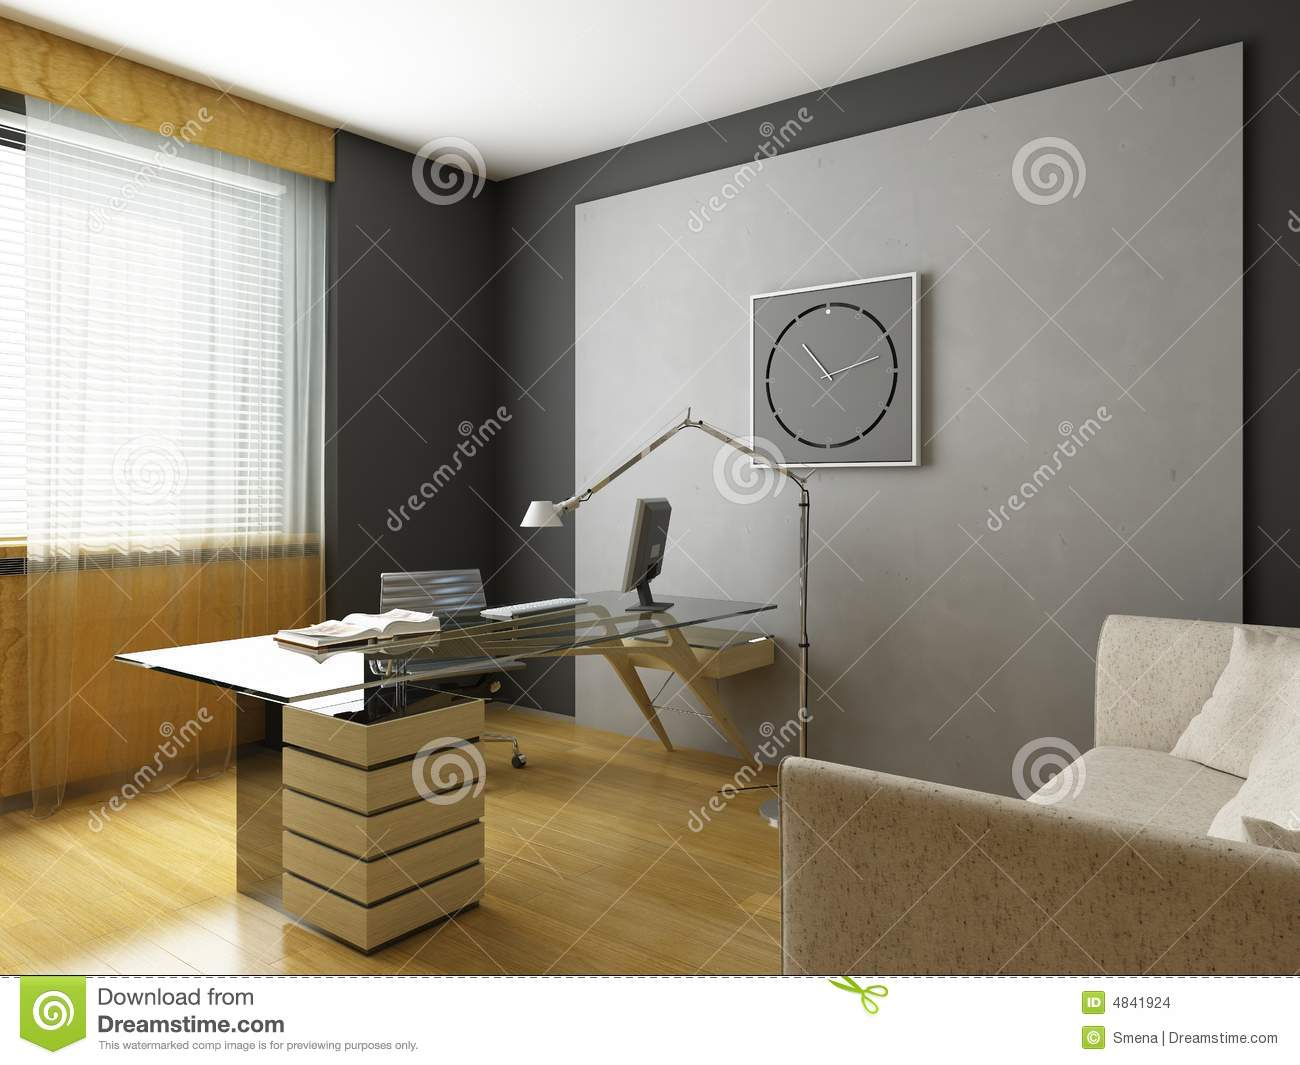 moderne innenarchitektur stock abbildung illustration von. Black Bedroom Furniture Sets. Home Design Ideas